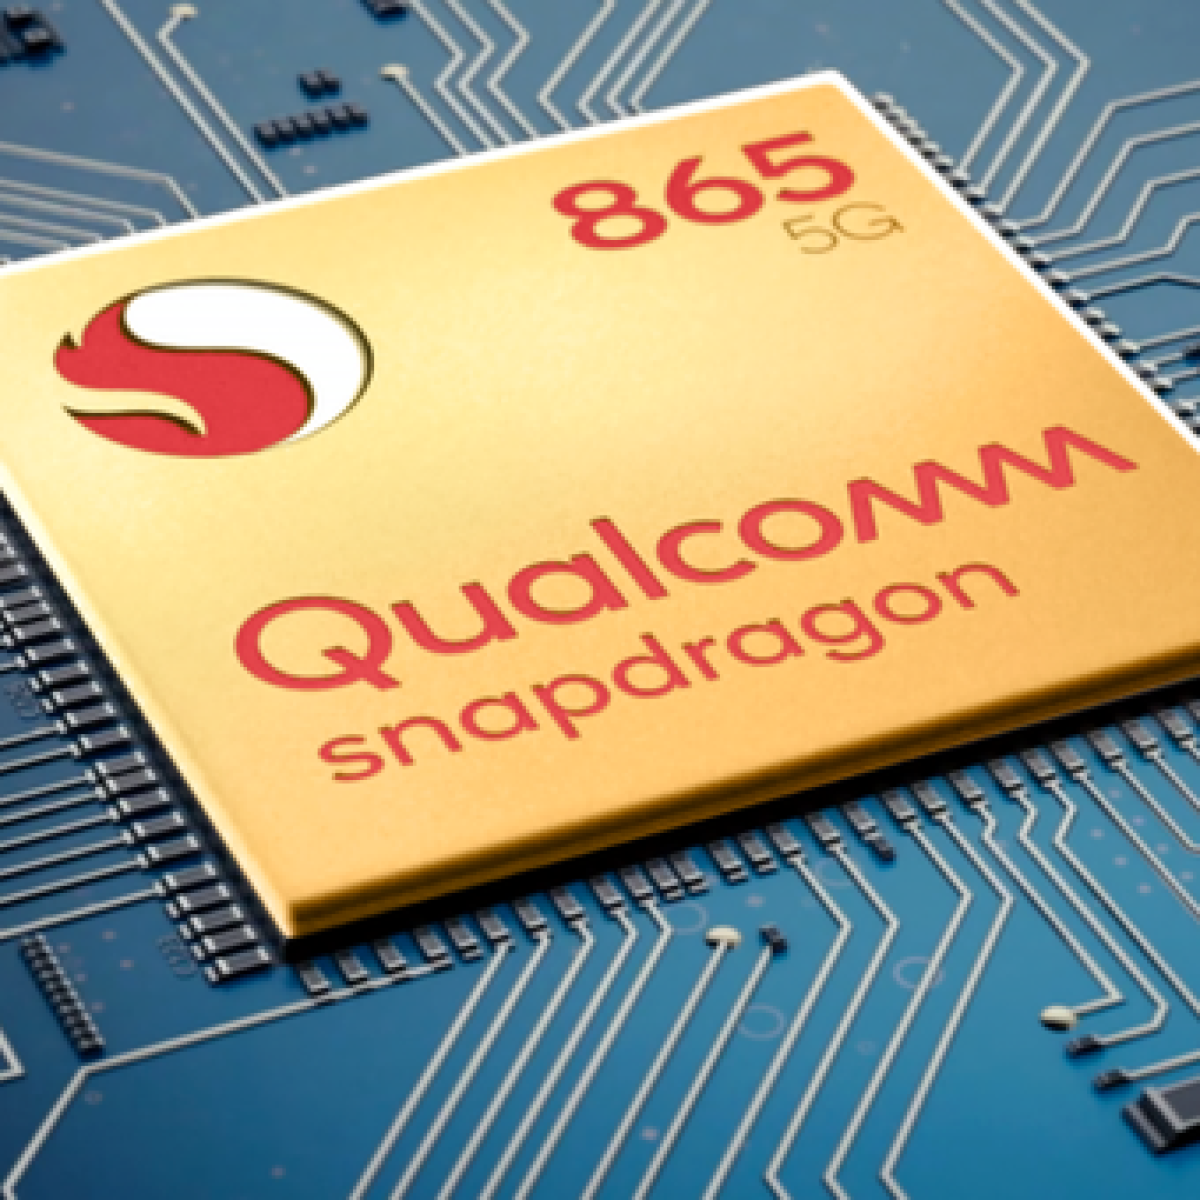 Google, LG could ditch Qualcomm's Snapdragon 865